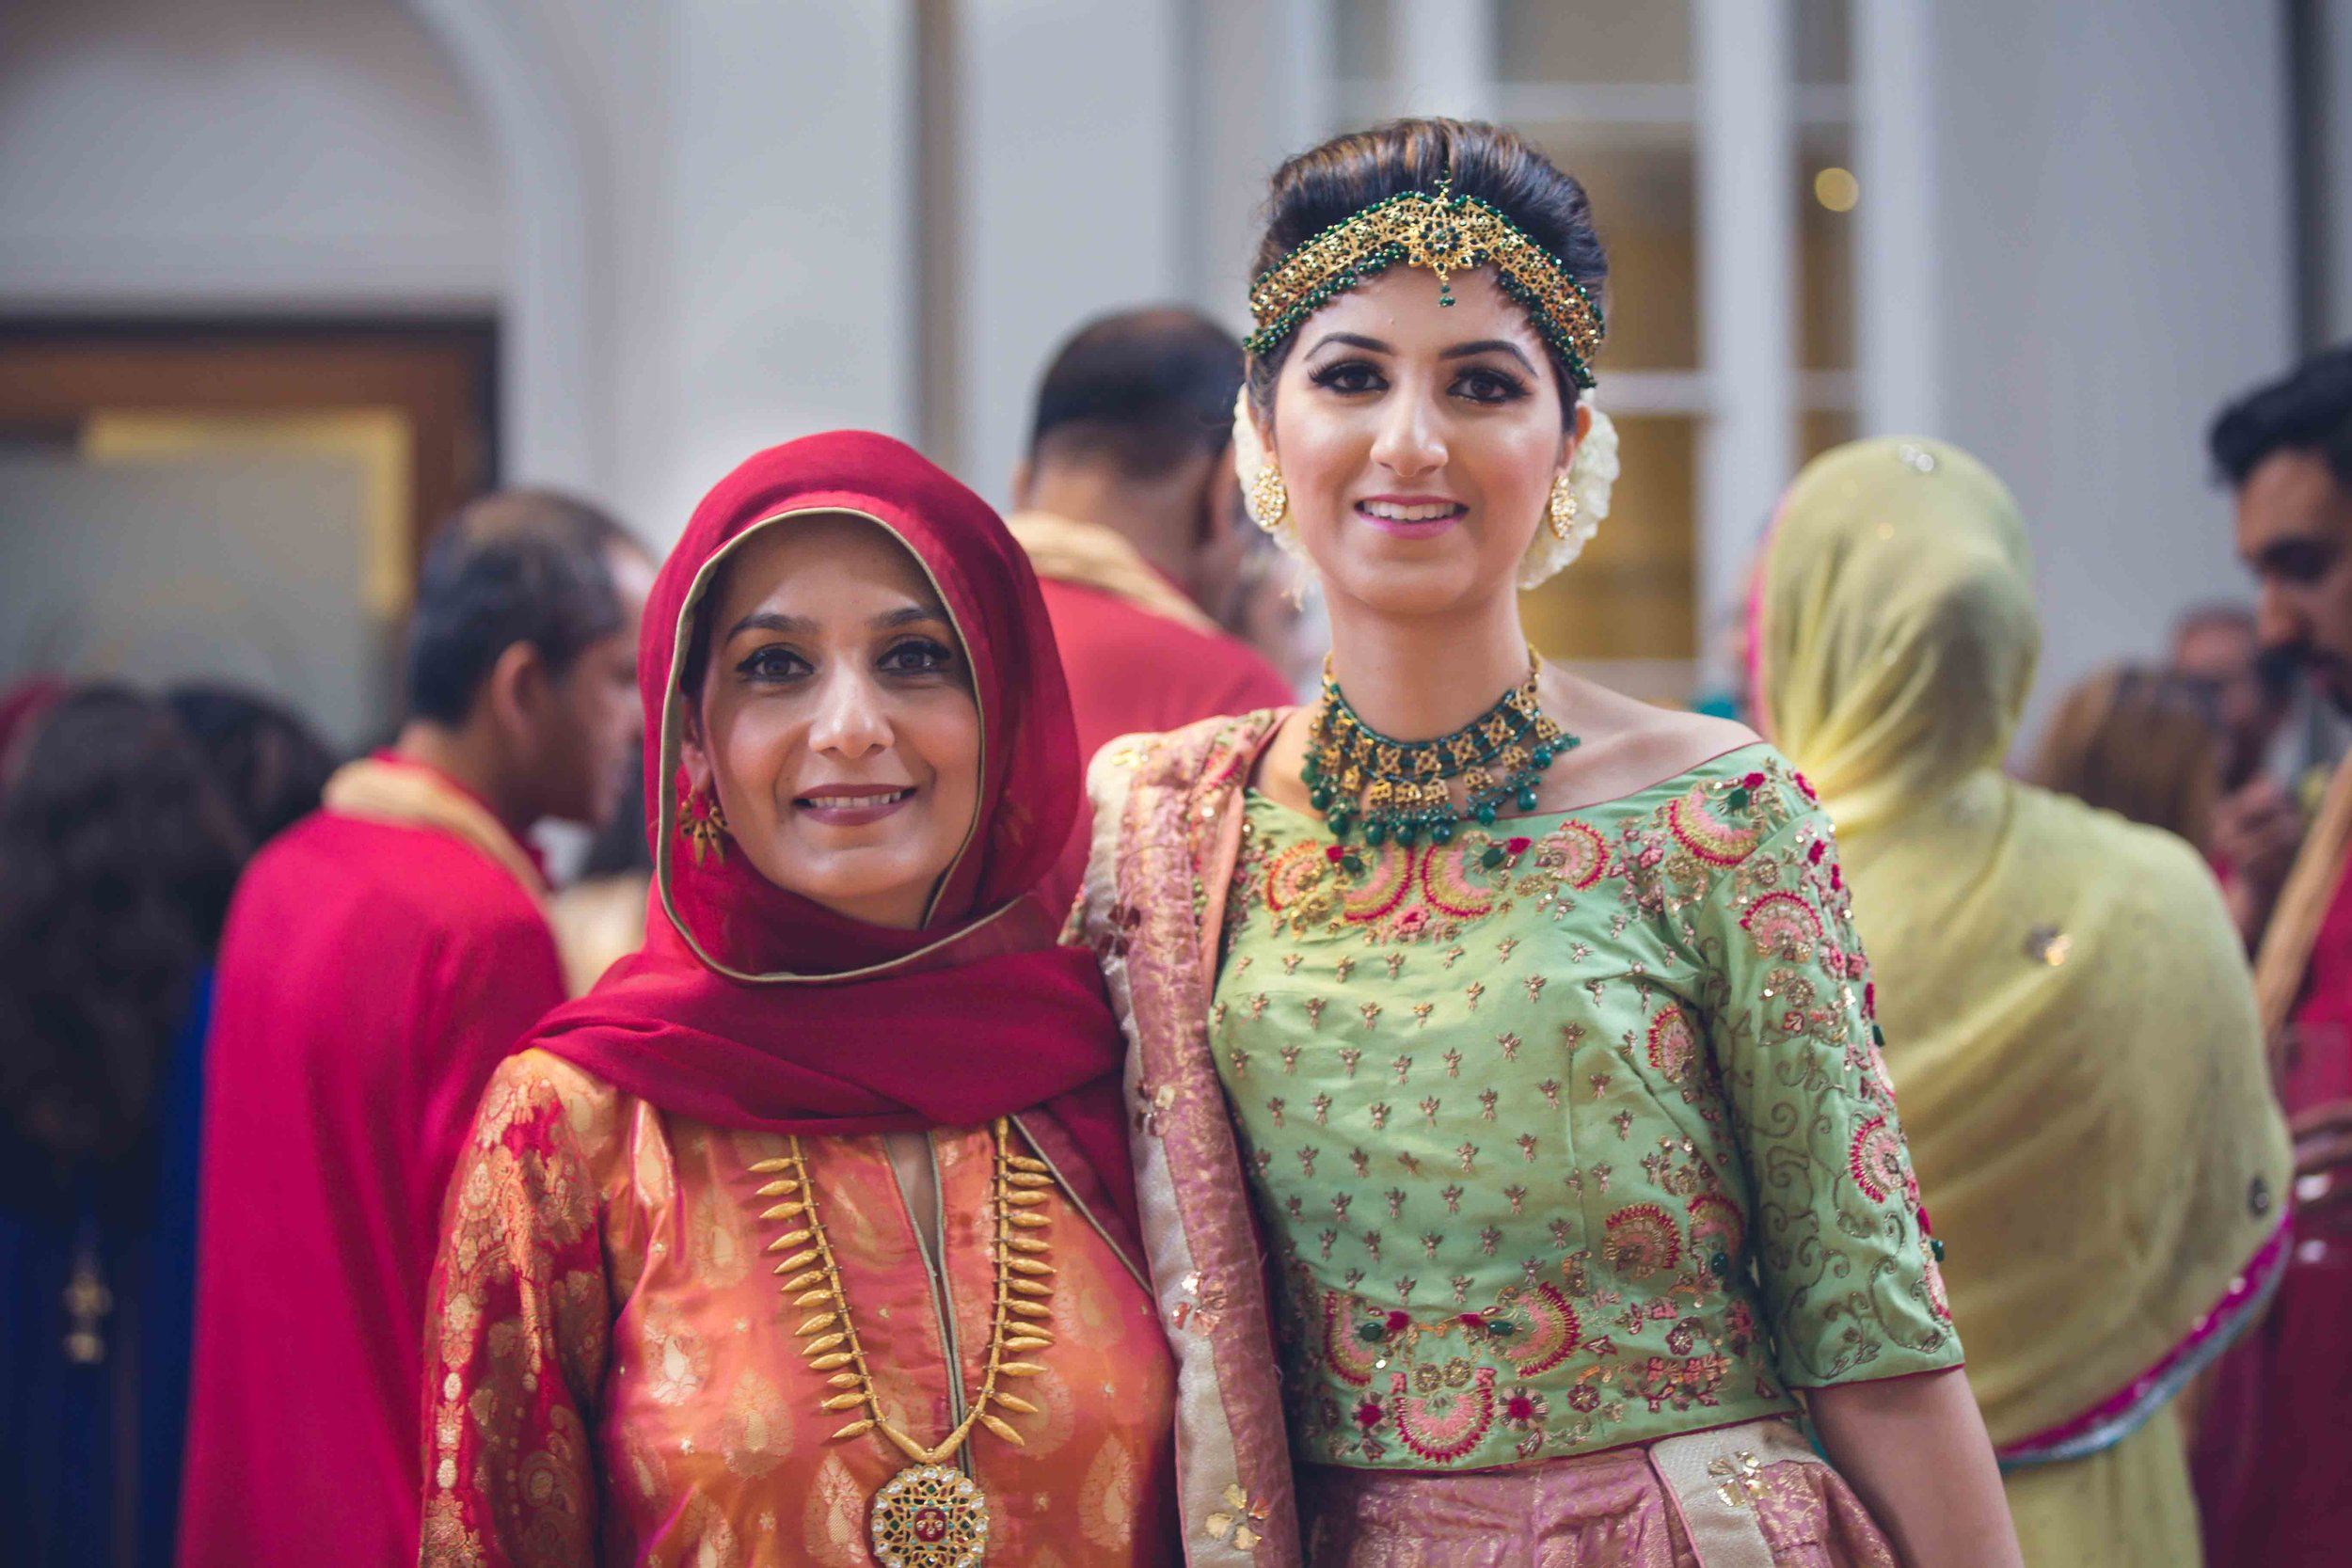 Asian Wedding Photographer Opu Sultan Photography Scotland Edinburgh Glasgow London Manchester Liverpool Birmingham Wedding Photos Salman & Maha Blog Photos-22.jpg